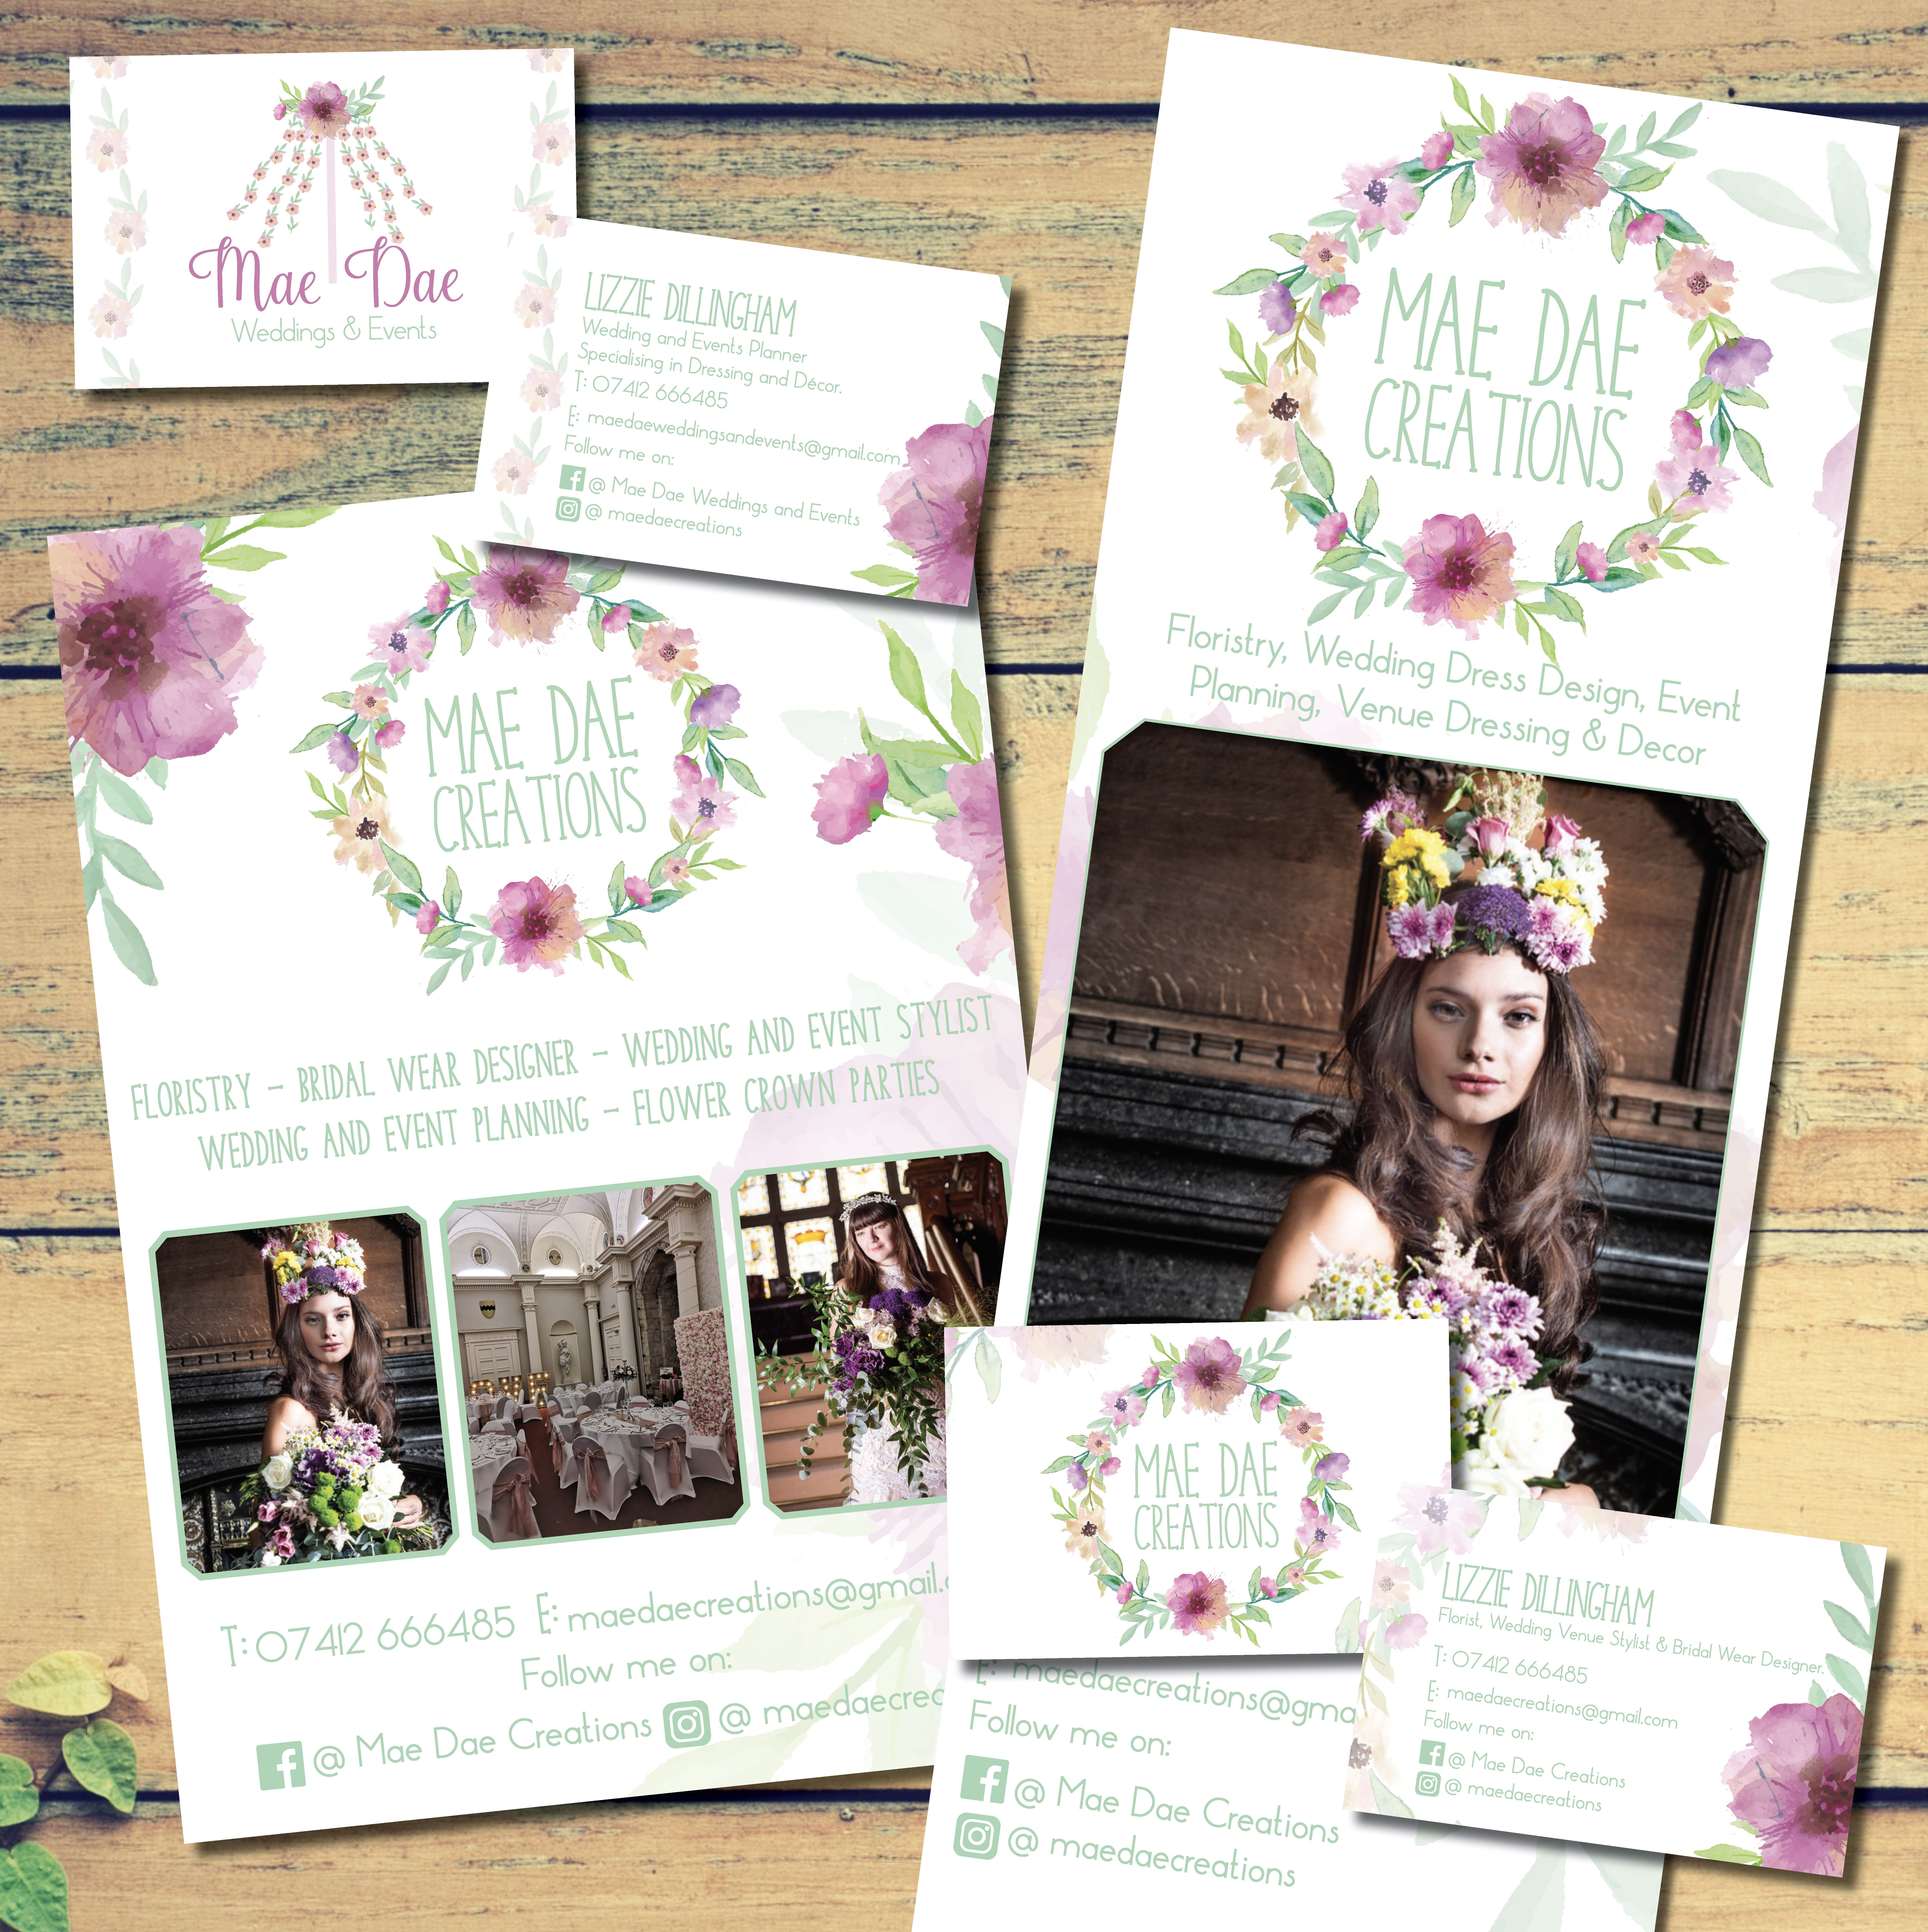 Leaflet Banner And Business Card Designs For Mae Dae Creations Wedding Event Planning Industrial Wedding Event Planning